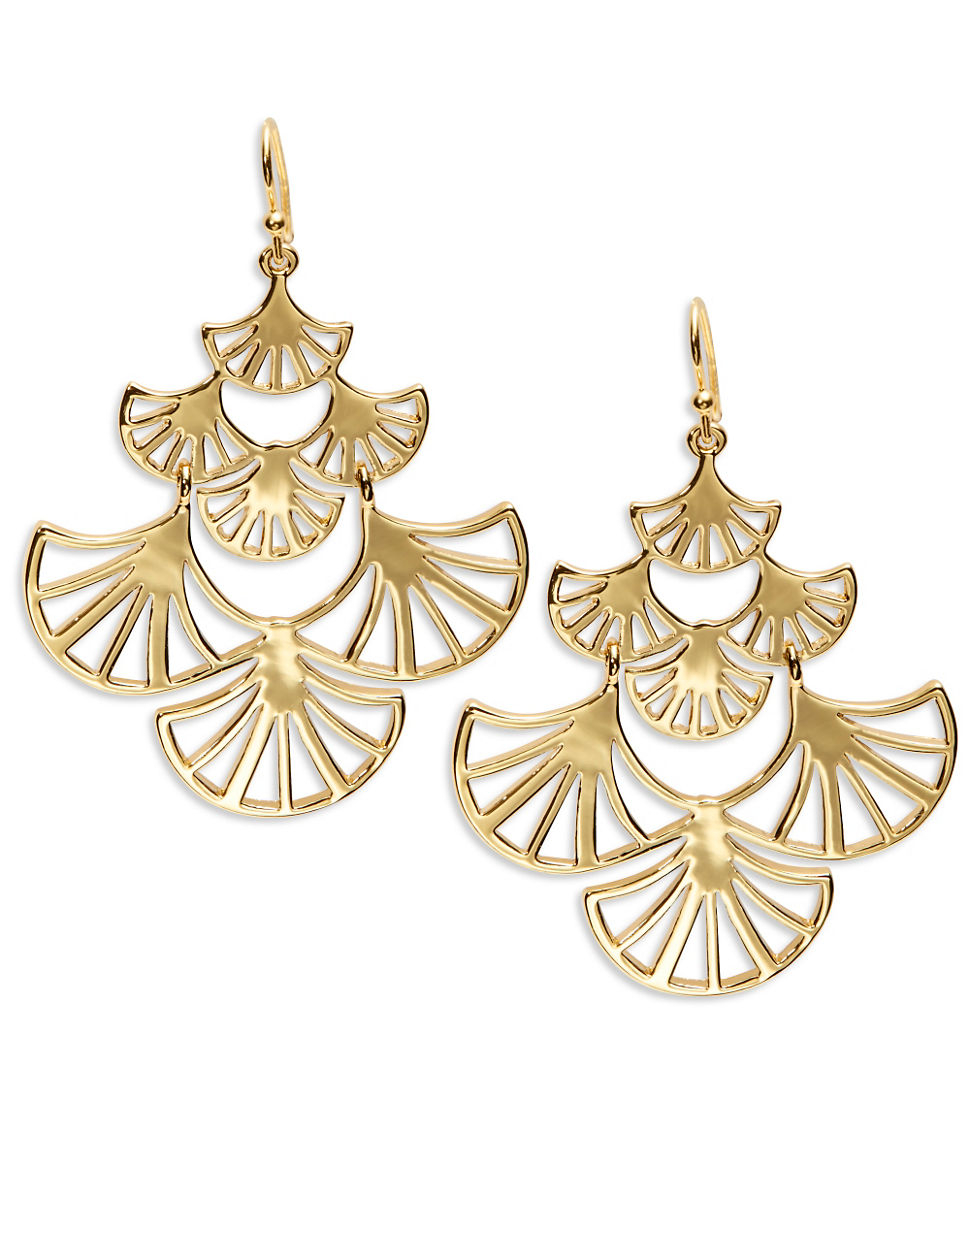 Trina turk Goldtone Fan Chandelier Earrings in Metallic – Gold Tone Chandelier Earrings